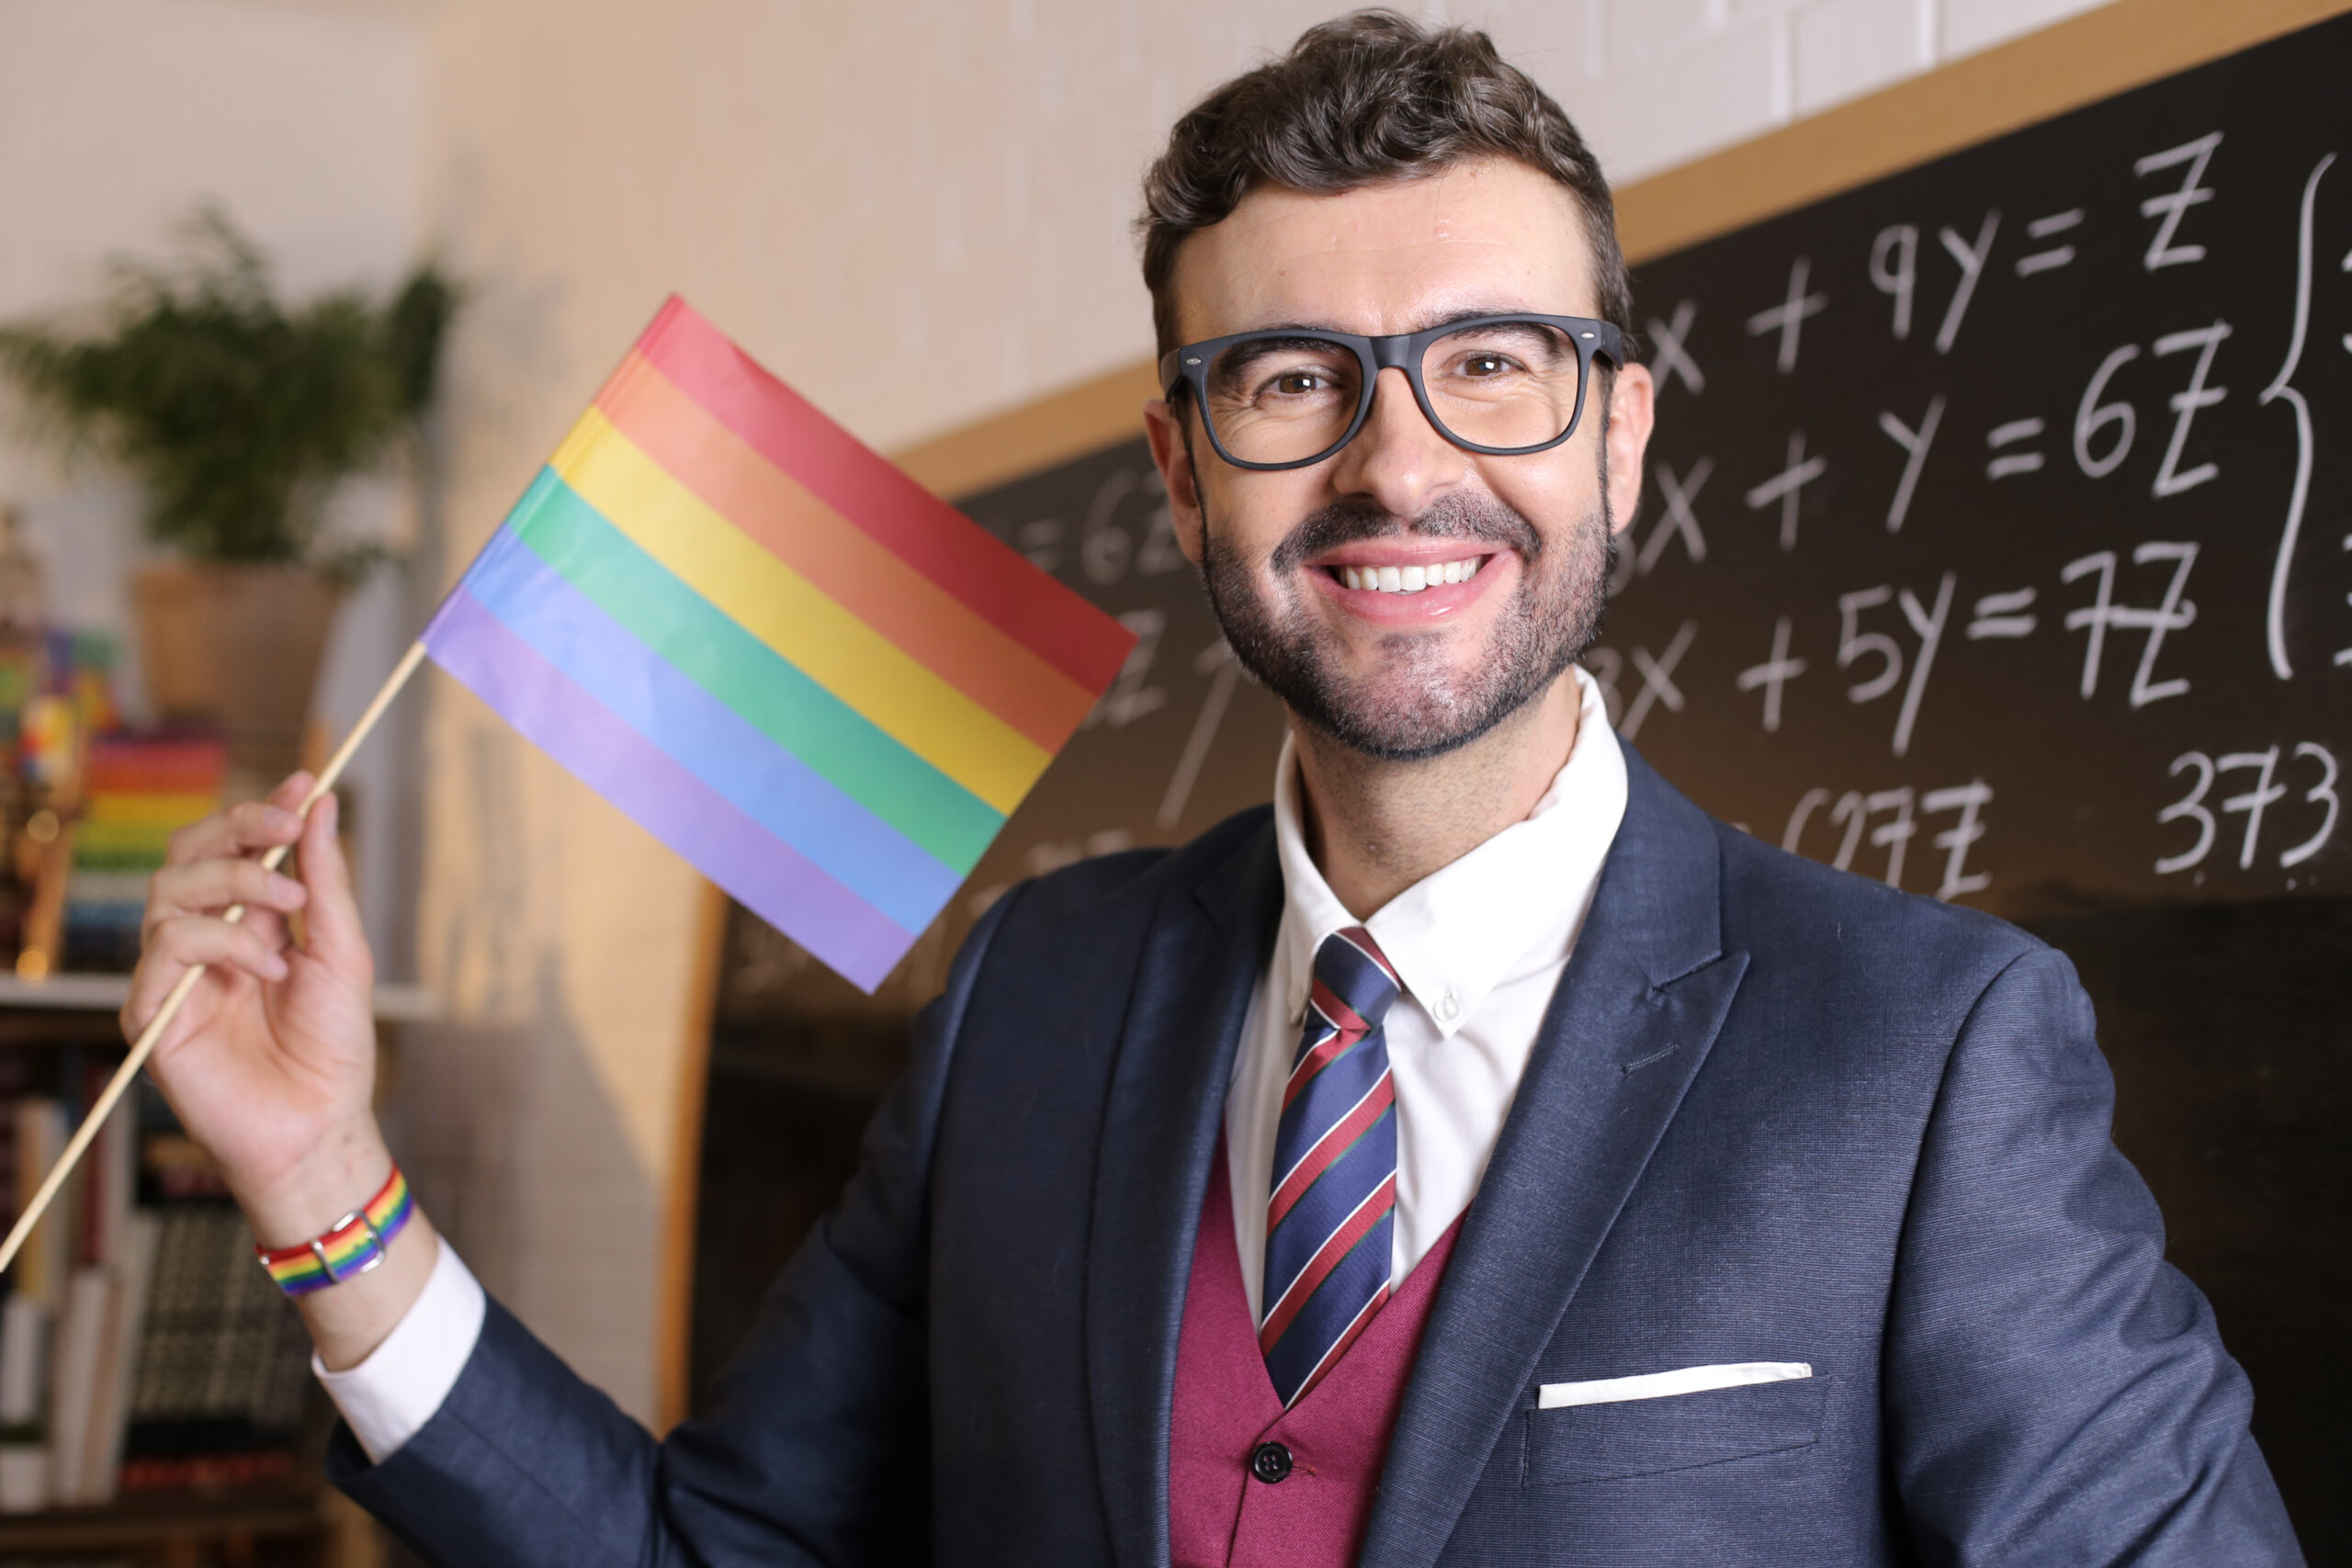 School district may ban Pride flags after parent spots one inside a classroom & freaks out